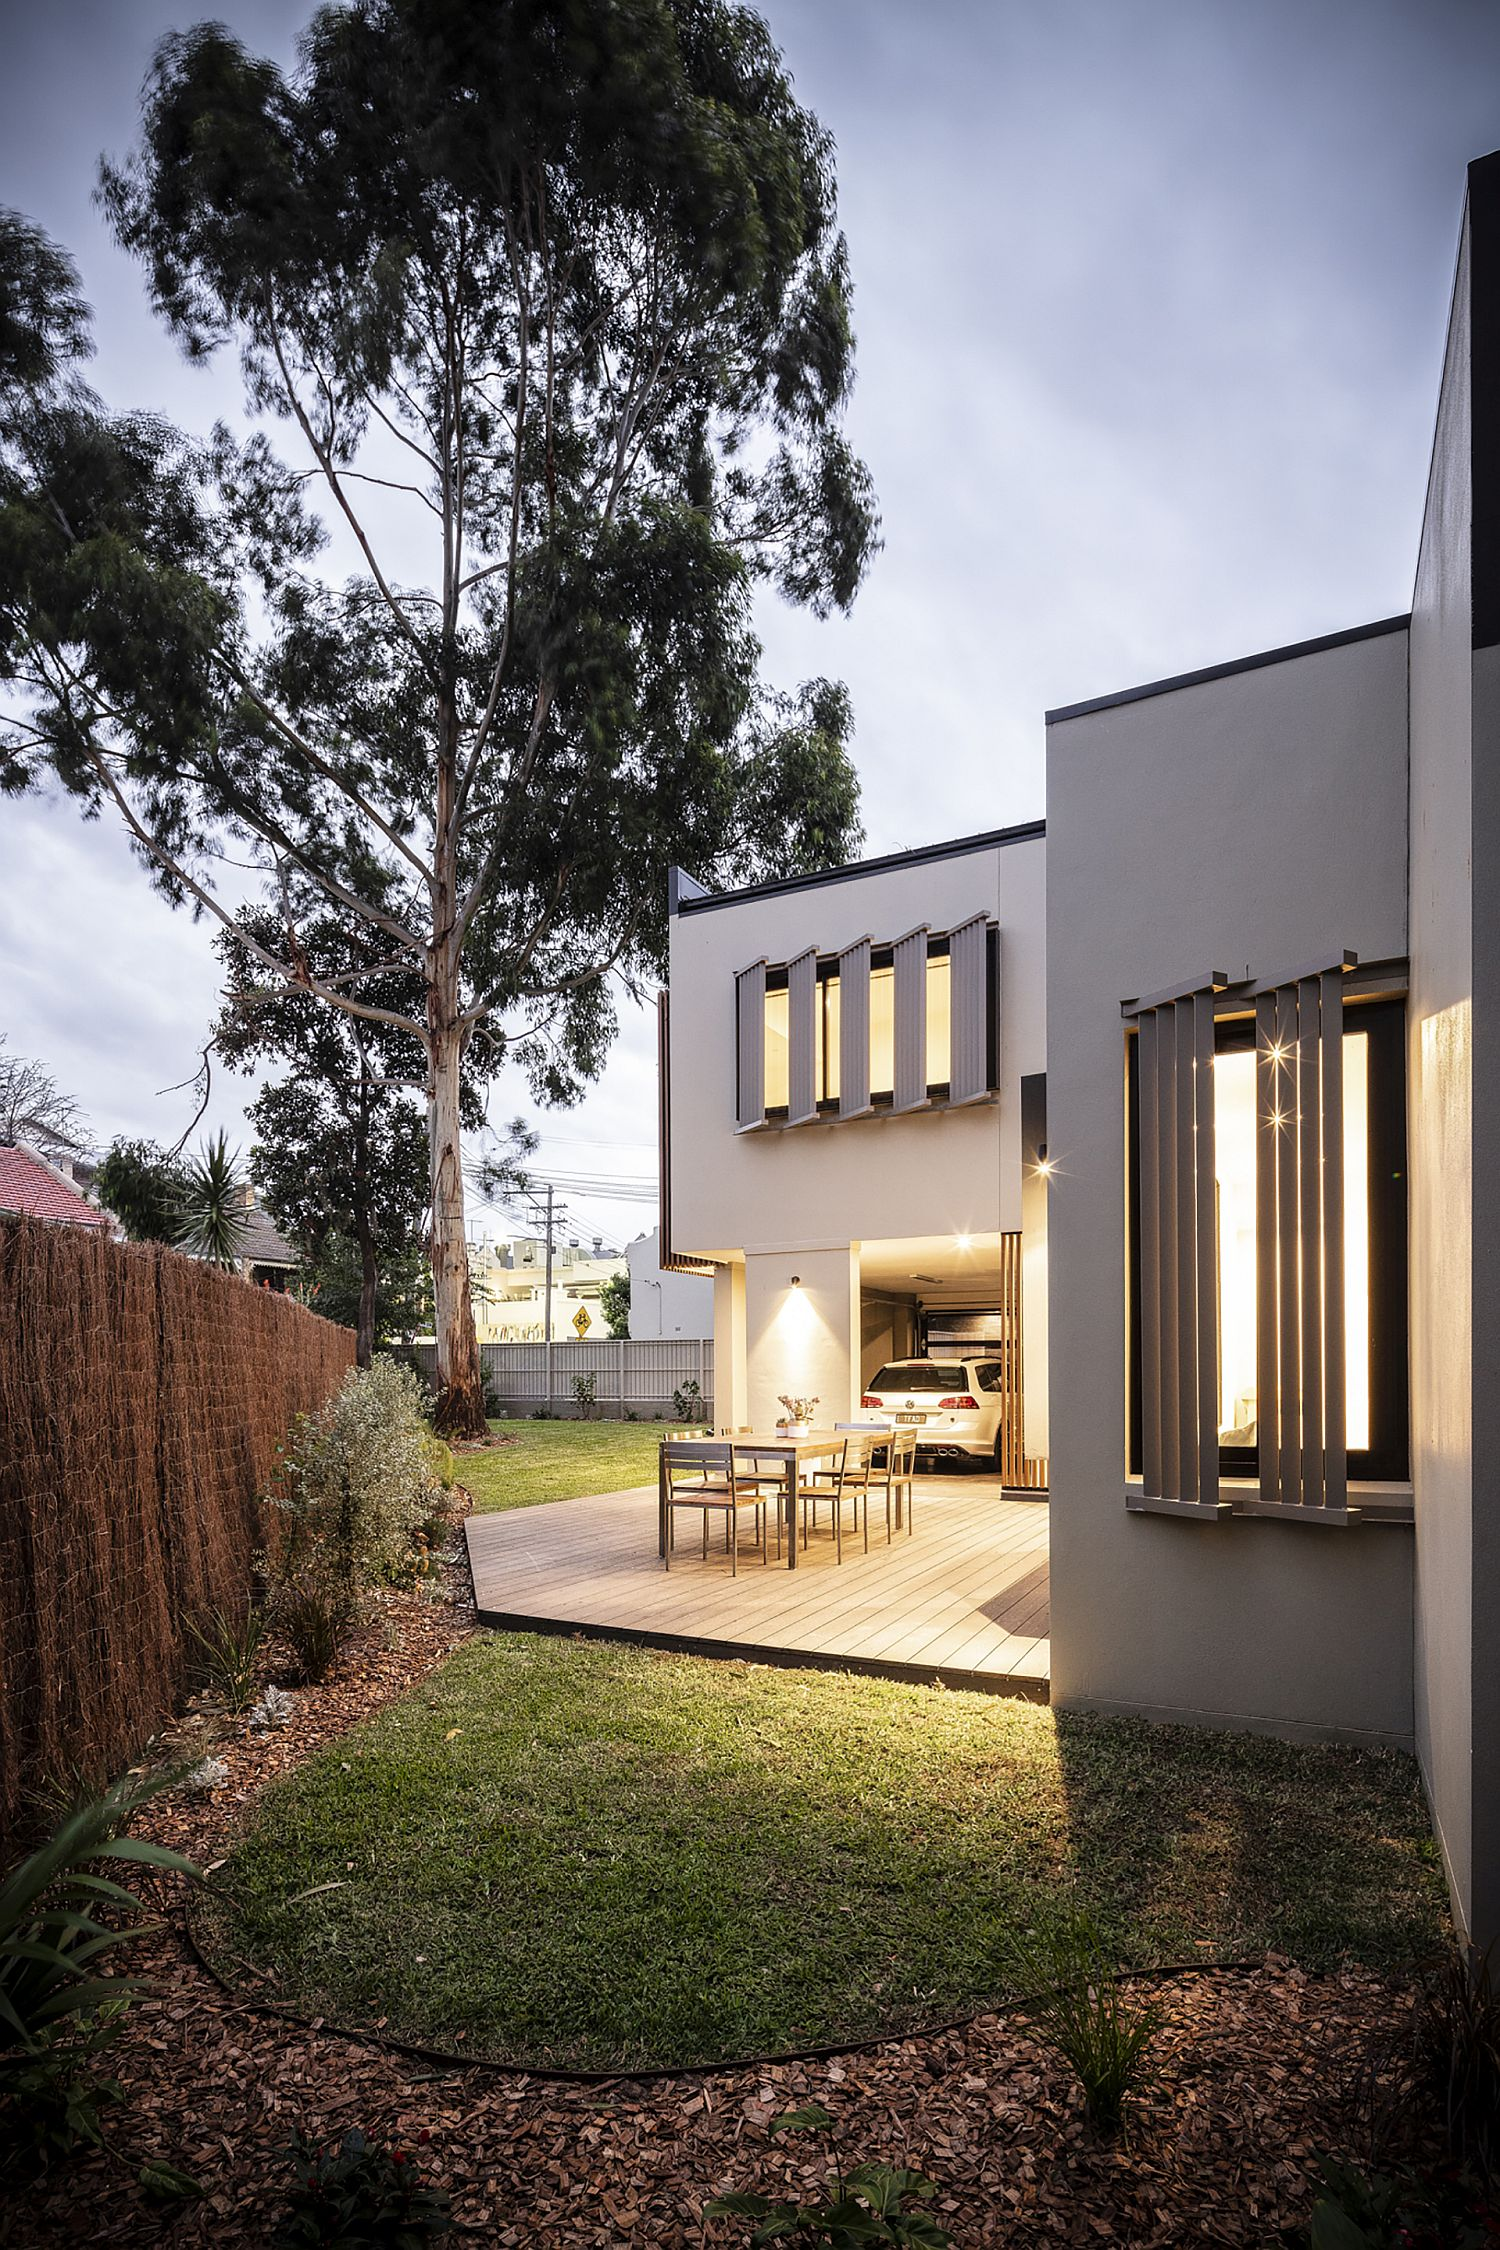 Exterior-of-the-old-house-turned-into-a-modern-family-home